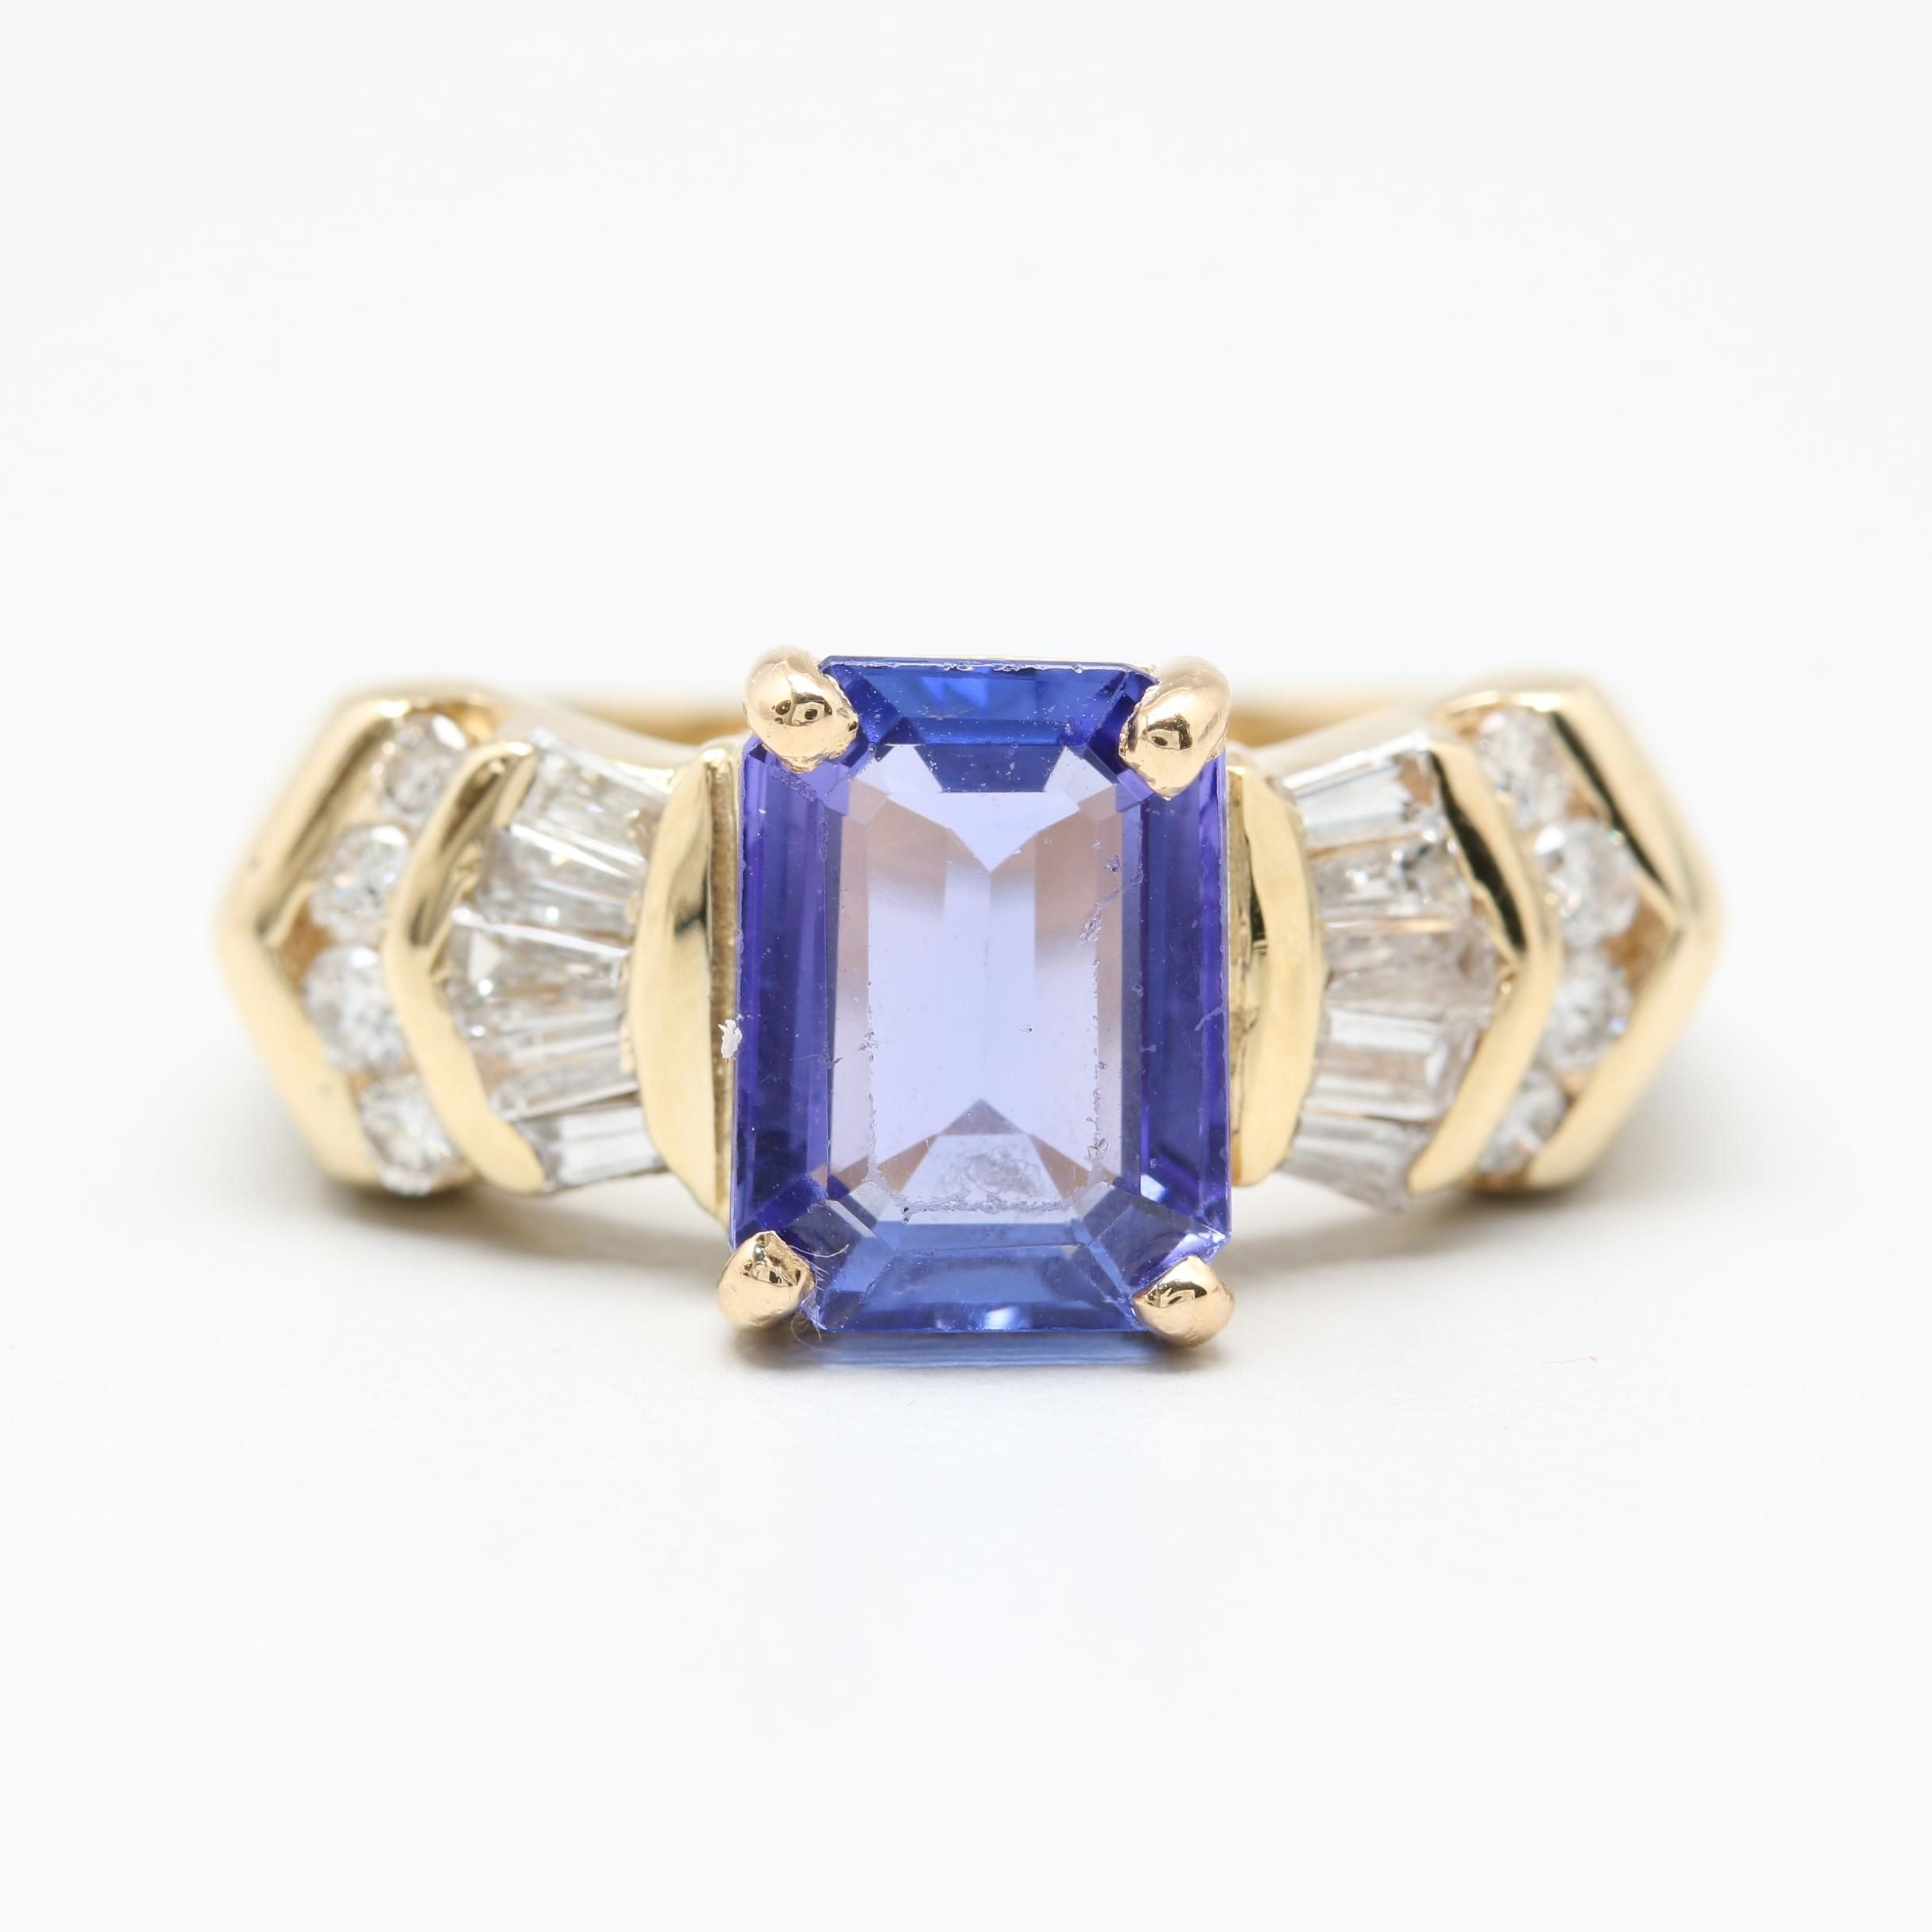 14K Yellow Gold Tanzanite and Diamond Ring with GIA Report